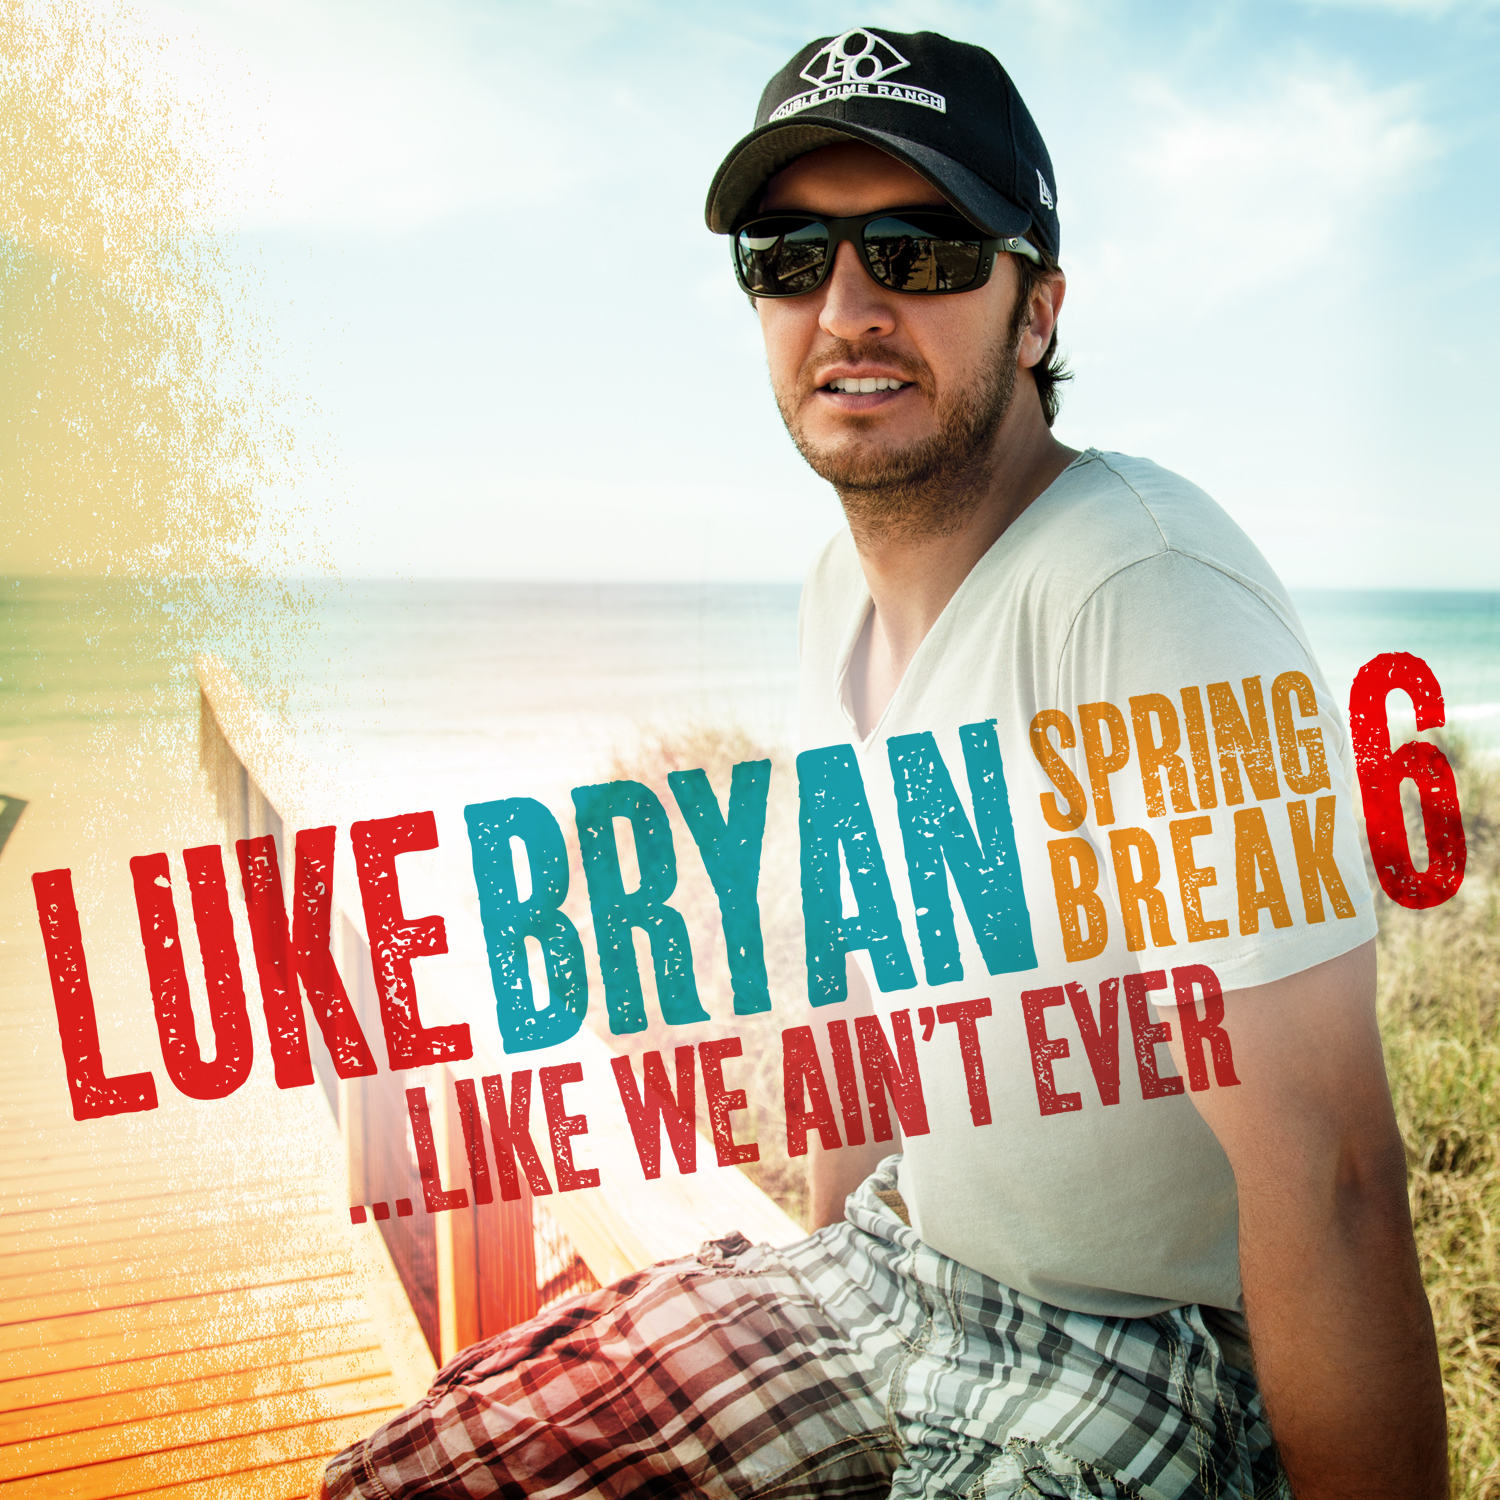 Luke Bryan Continues Spring Break On 'Spring Break 6'